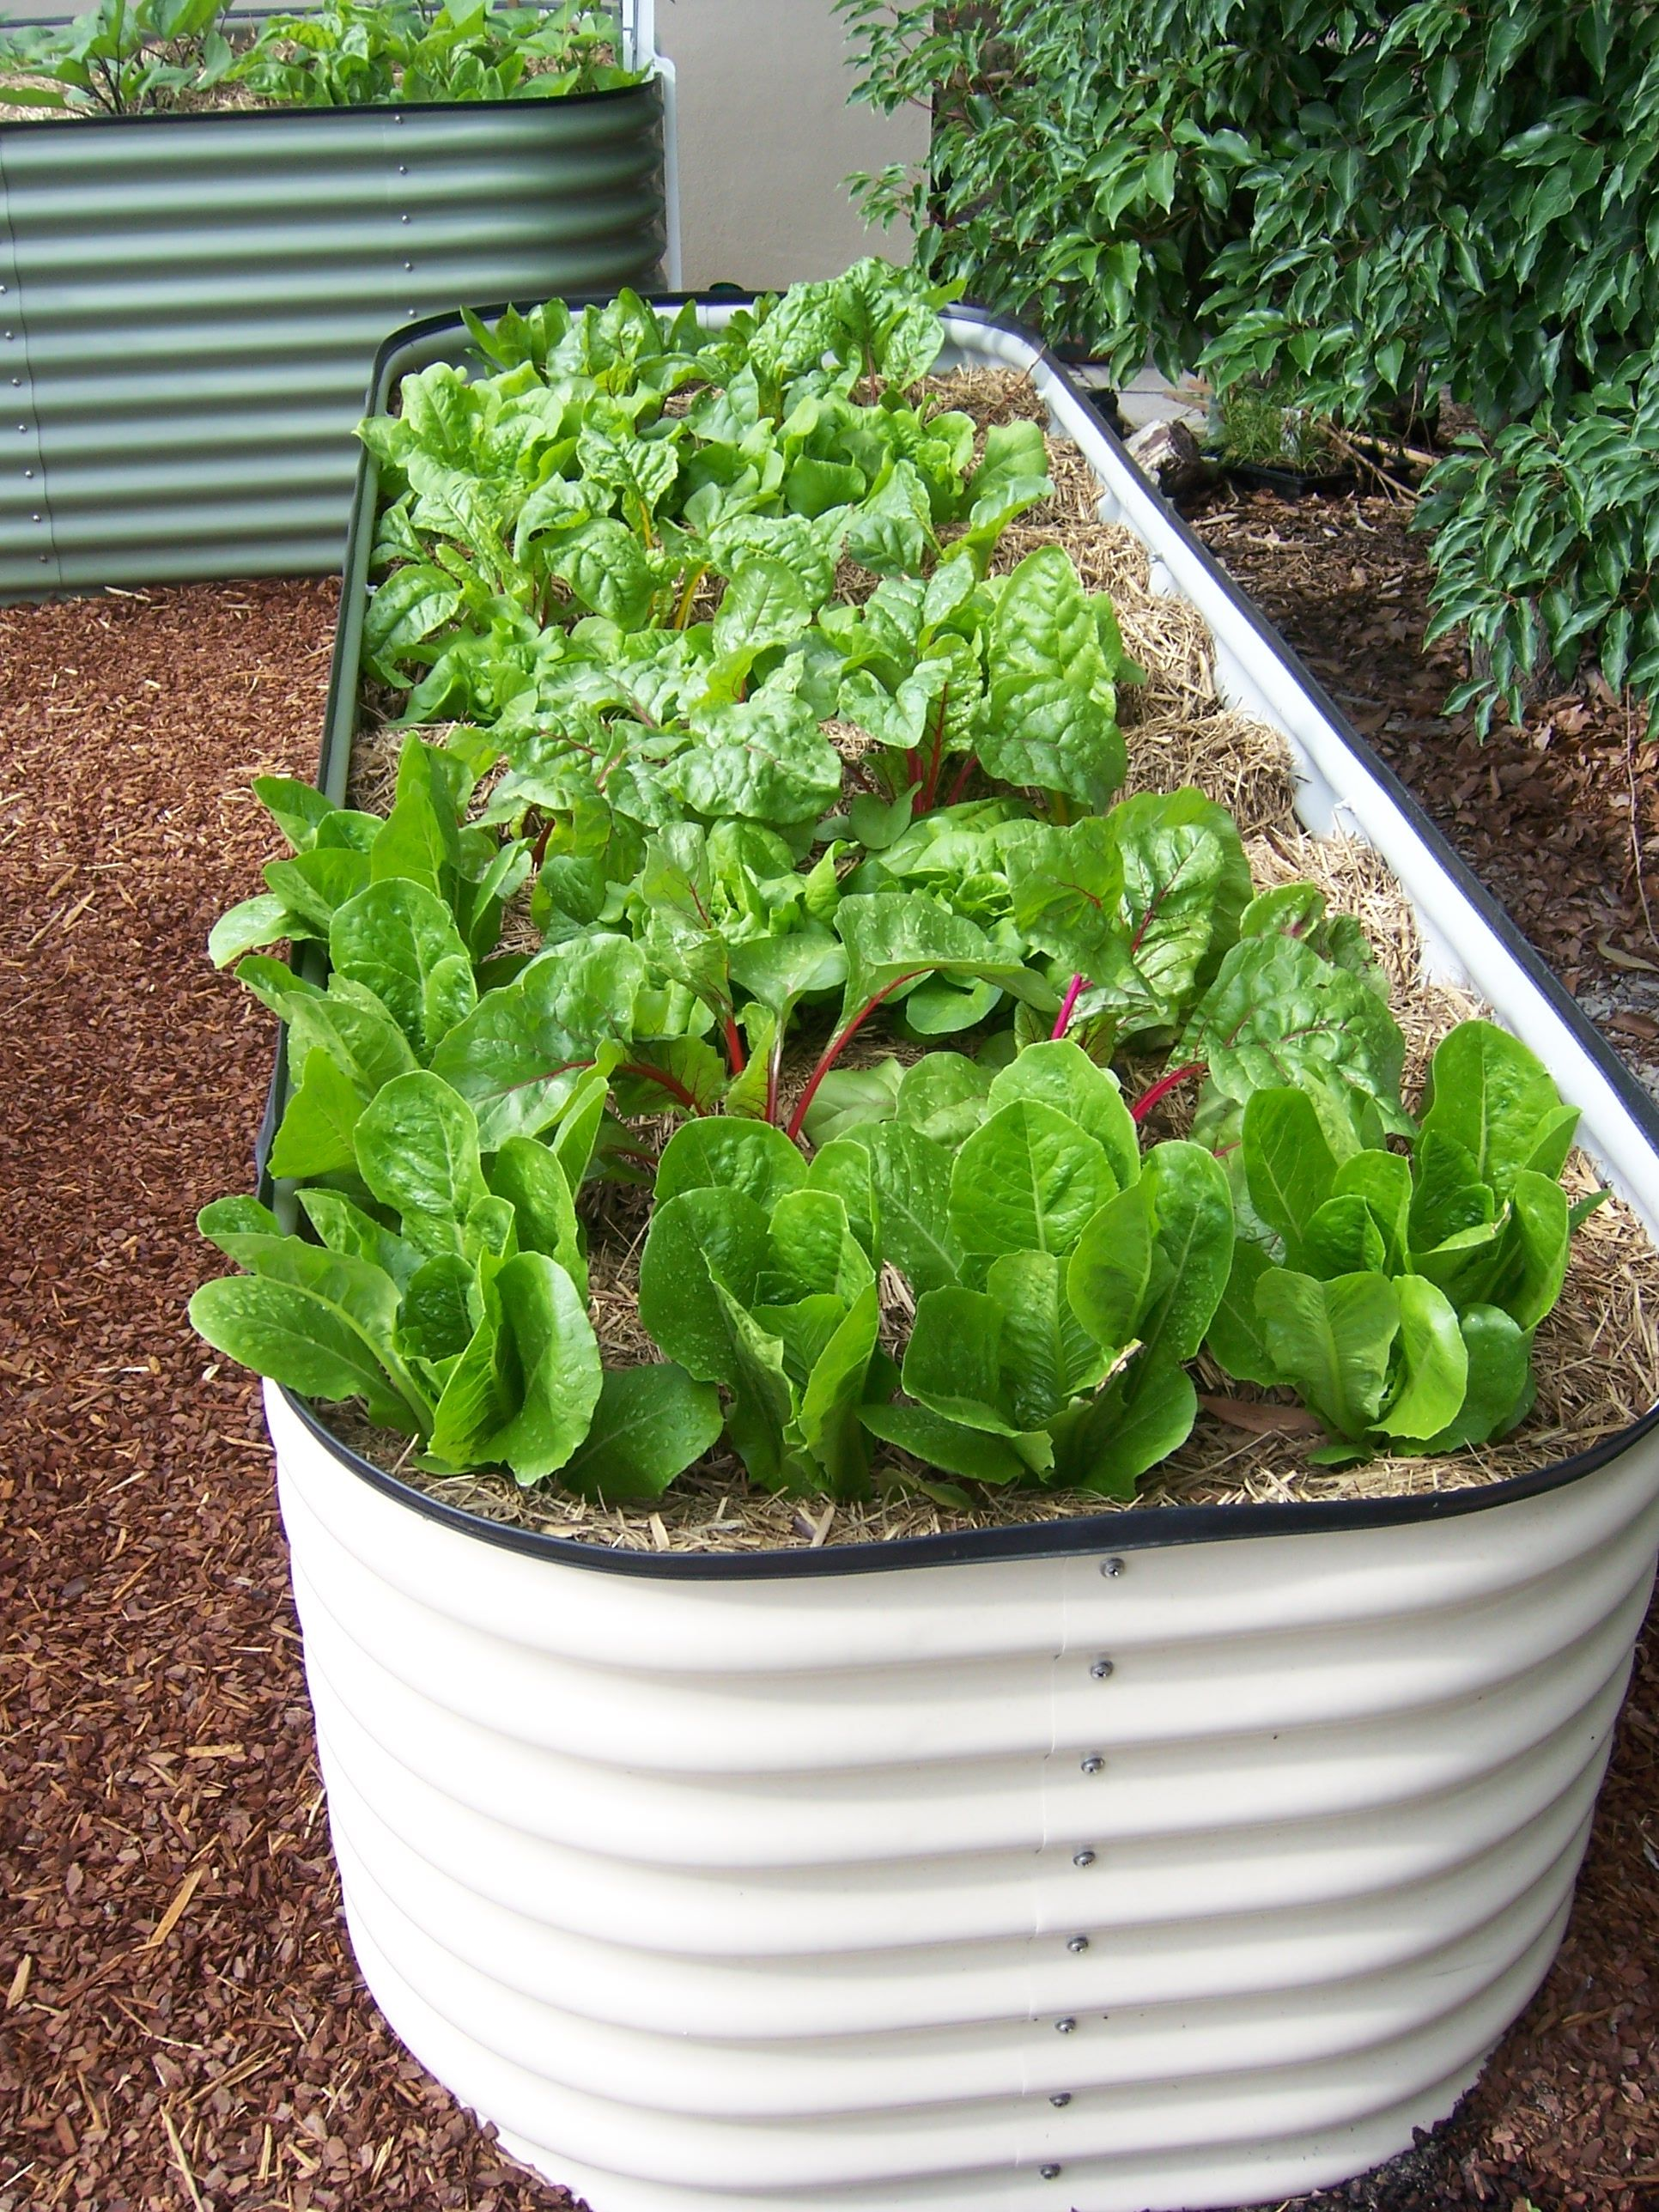 Raised Garden Bed Planting Ideas find this pin and more on raised bed gardening Raised Garden Bed Planting Ideas Cinder Block Raised Bed Ideas Raised Garden Bed Ideas Grumpys Raised